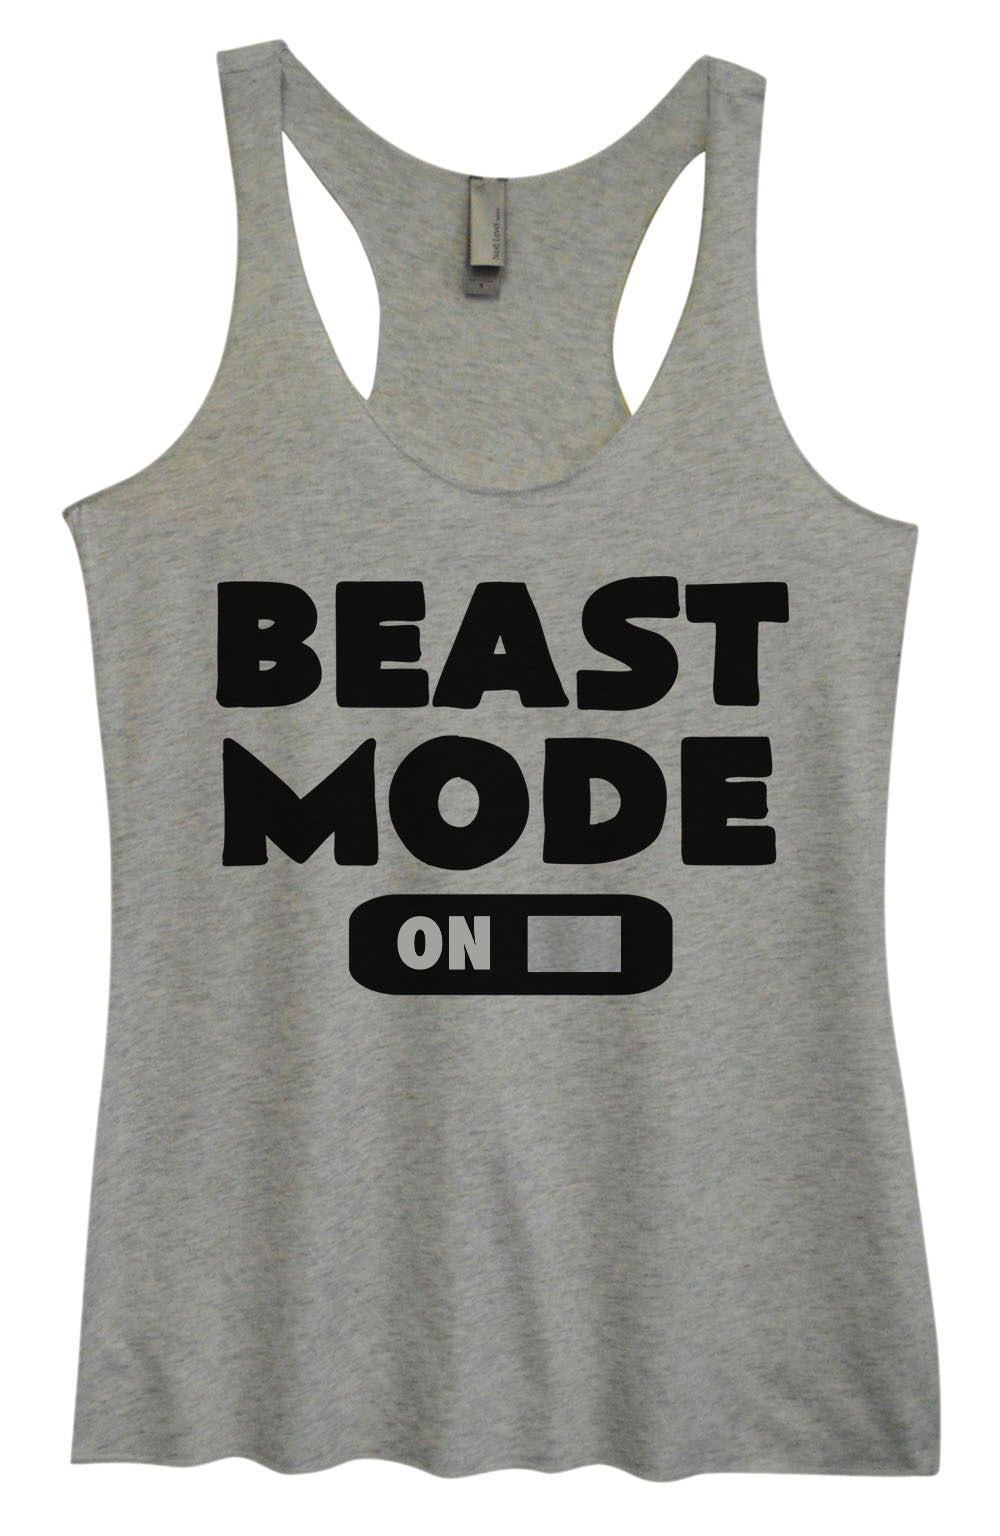 Womens Fashion Triblend Tank Top - Beast Mode On - Tri-764 - Funny Shirts Tank Tops Burnouts and Triblends  - 2